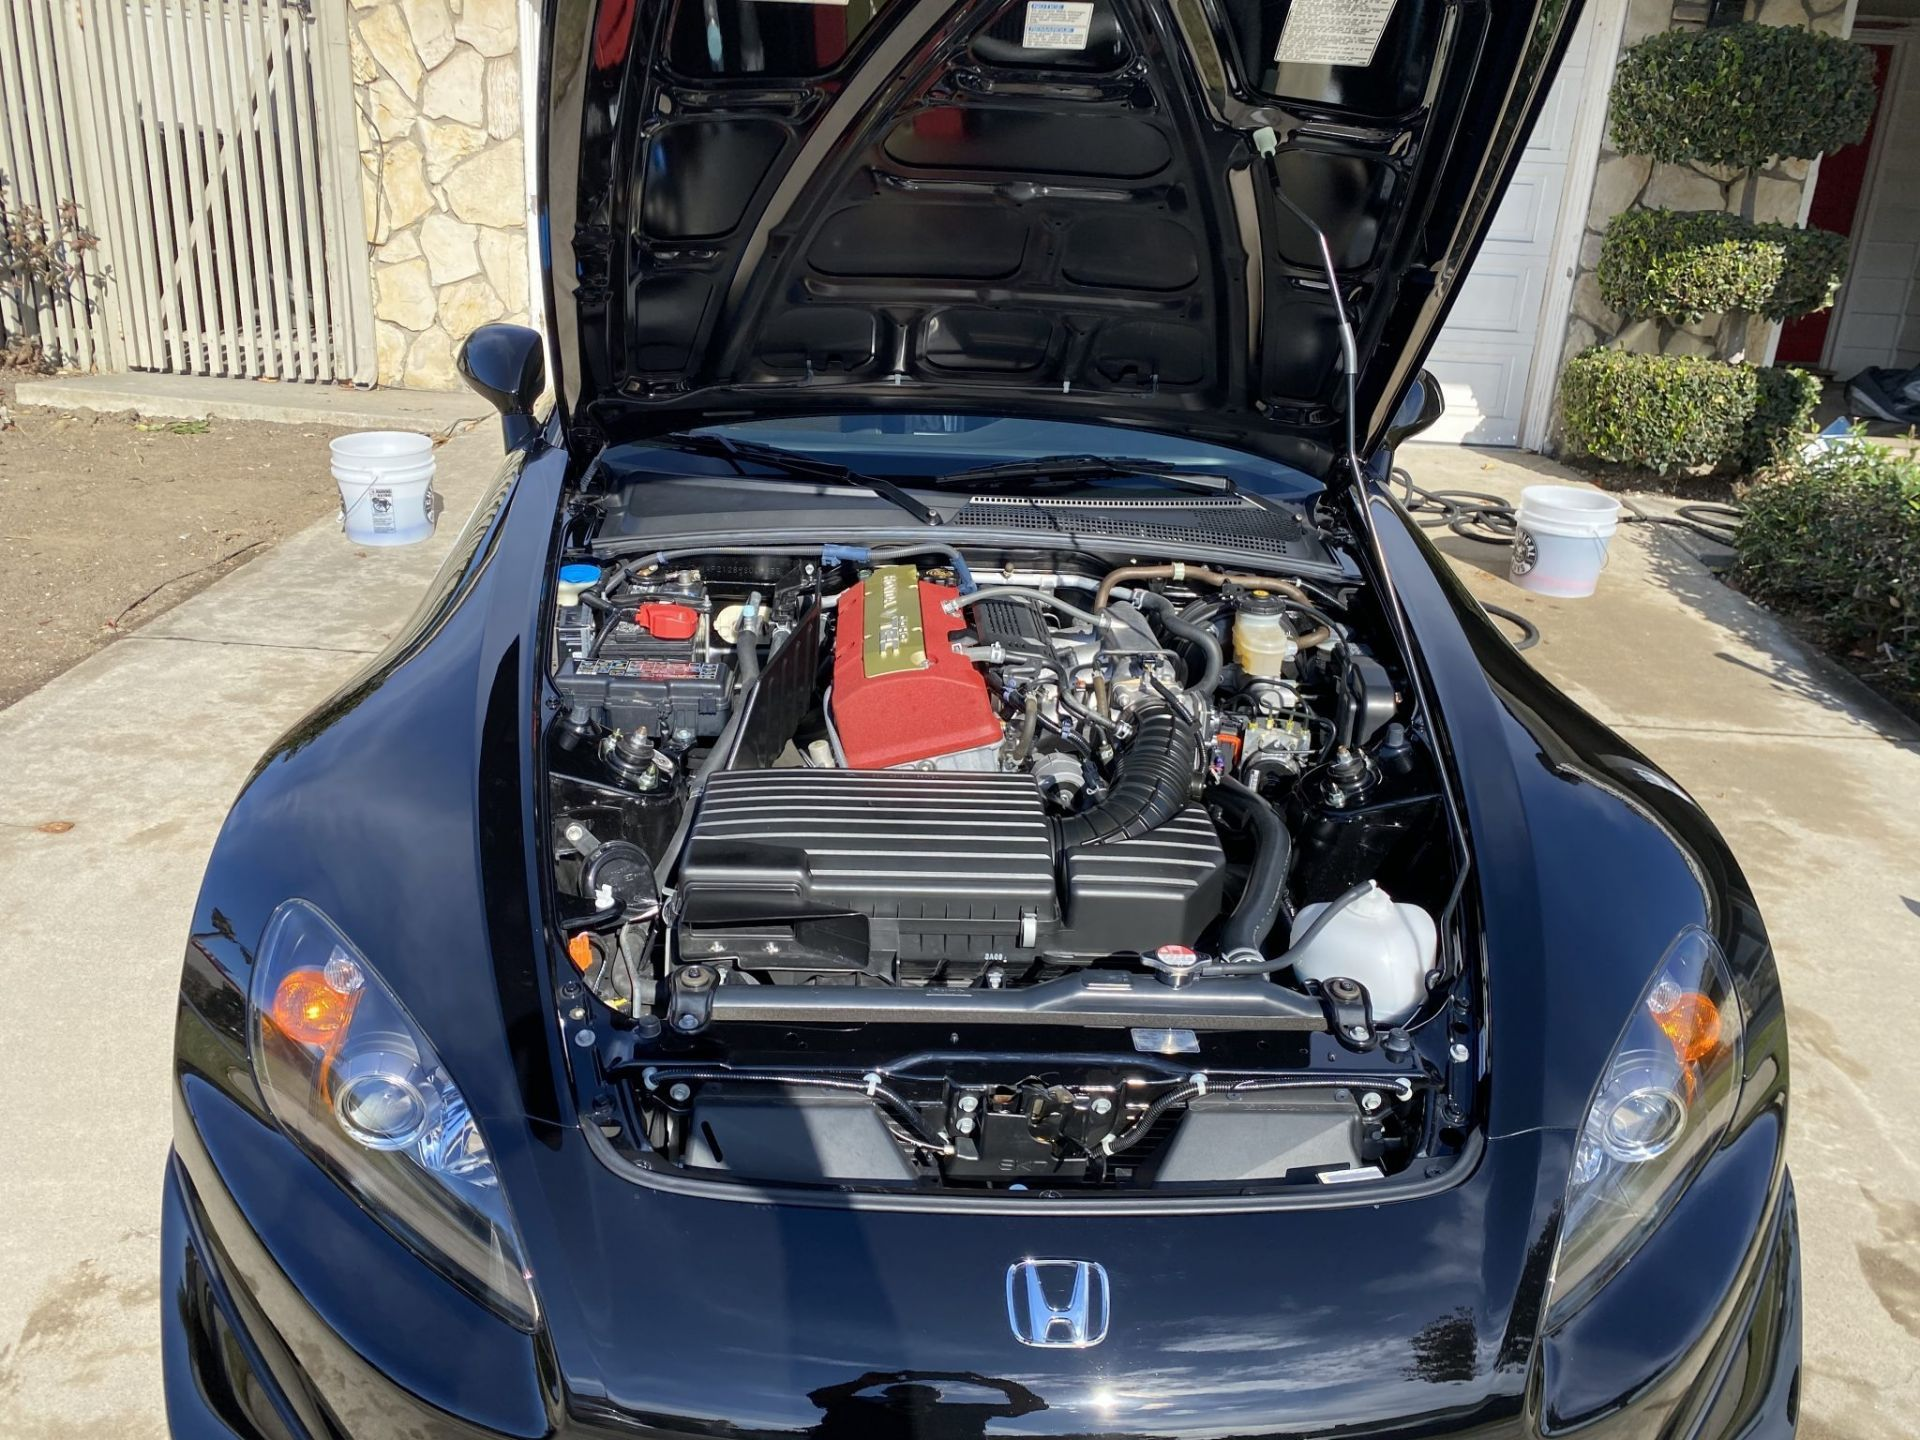 2009_Honda_S2000_CR_sale-0013